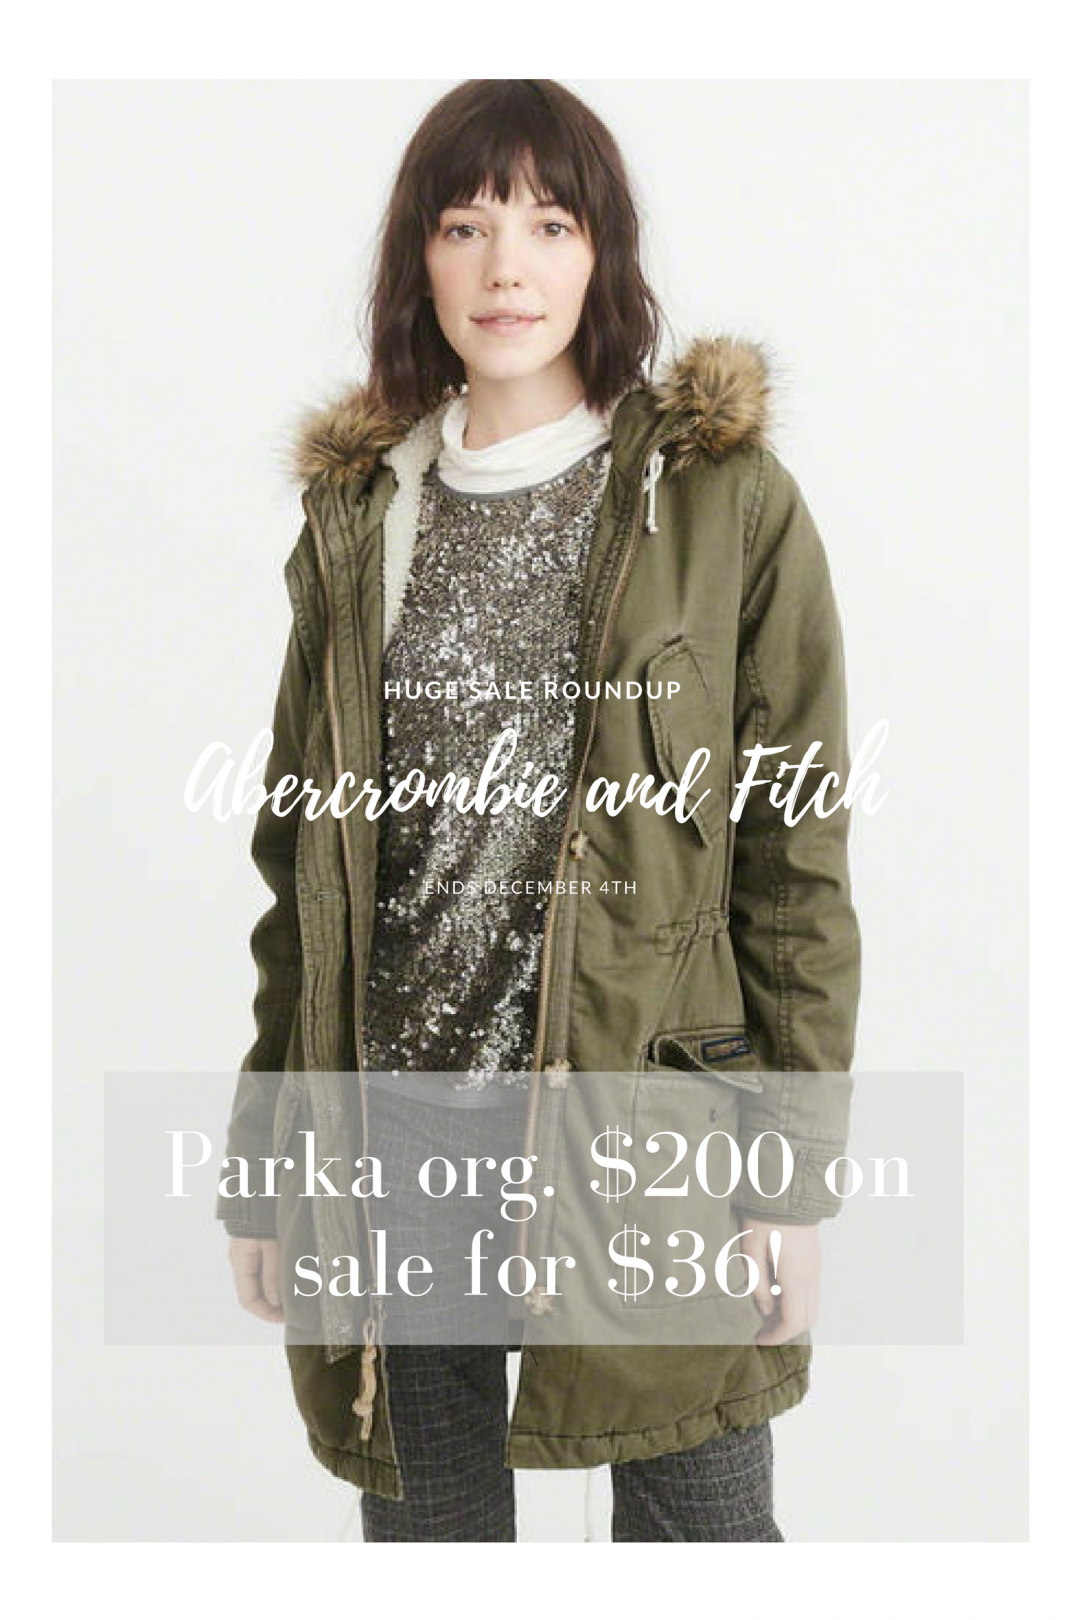 Abercrombie and Fitch sale! Parka originally $200 on sale for $36.